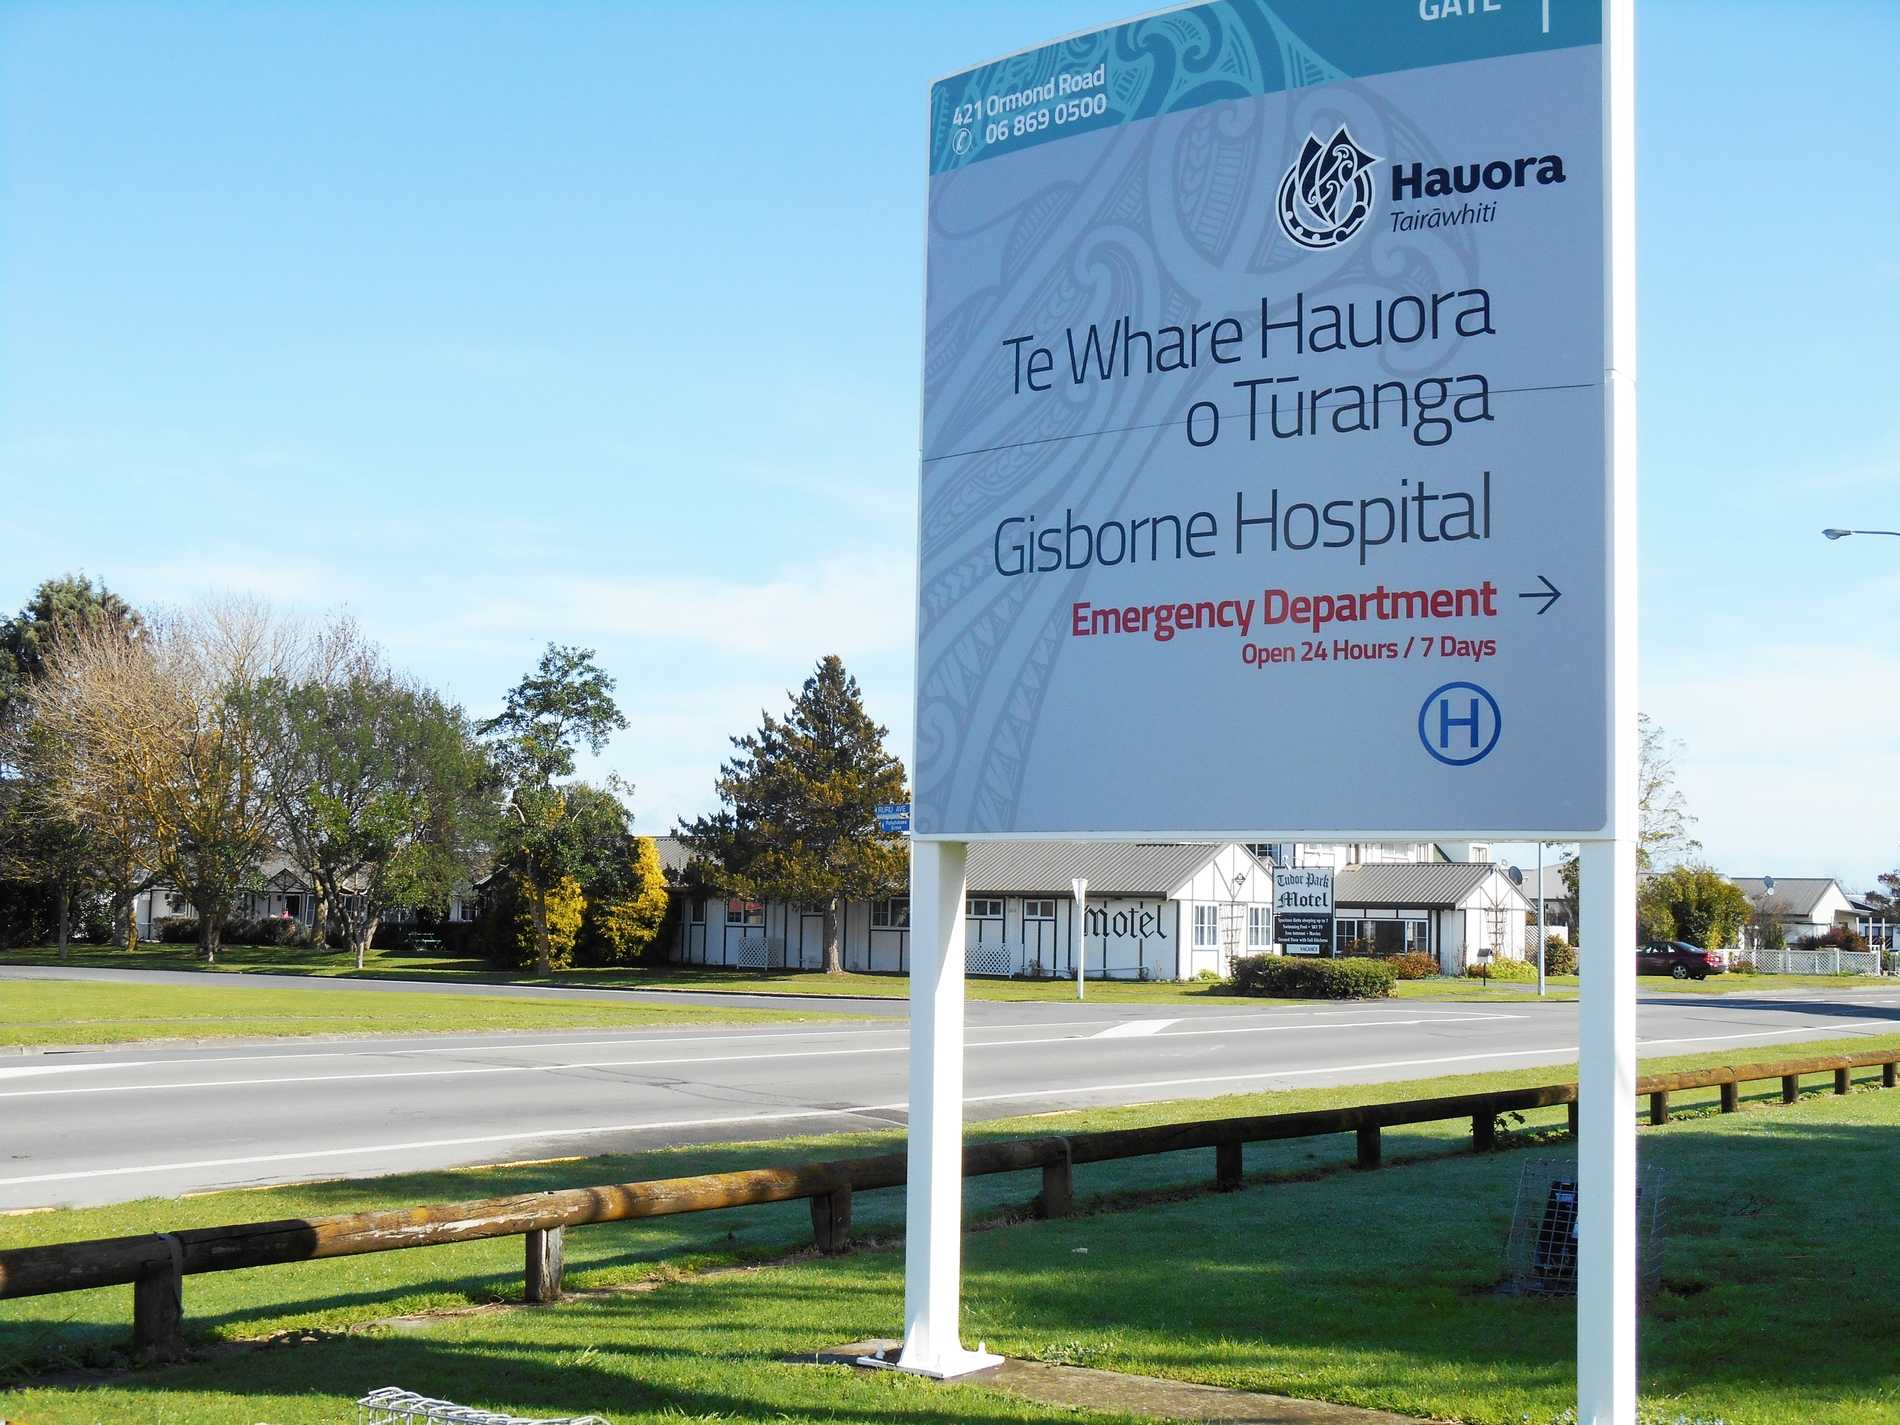 Gisborne Hospital across the road